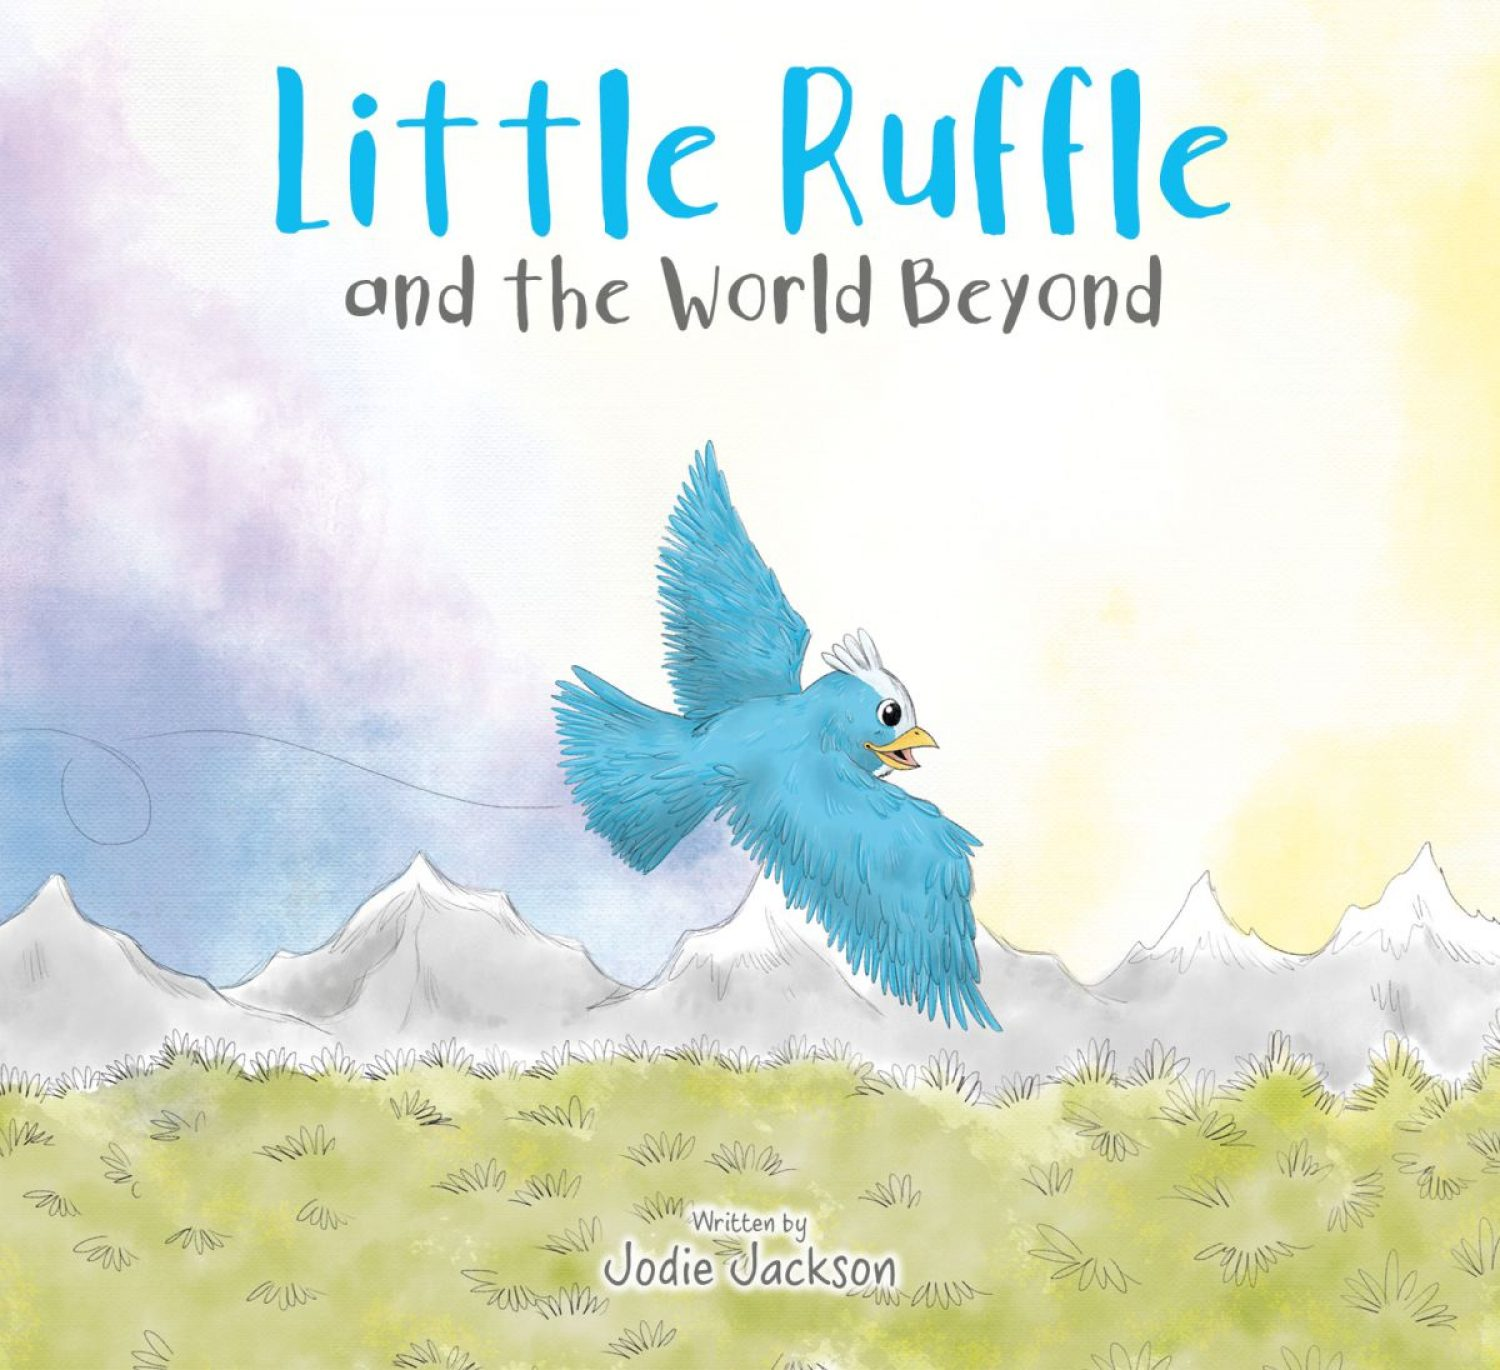 Little Ruffle and the World Beyond by Jodie Jackson comes out this week